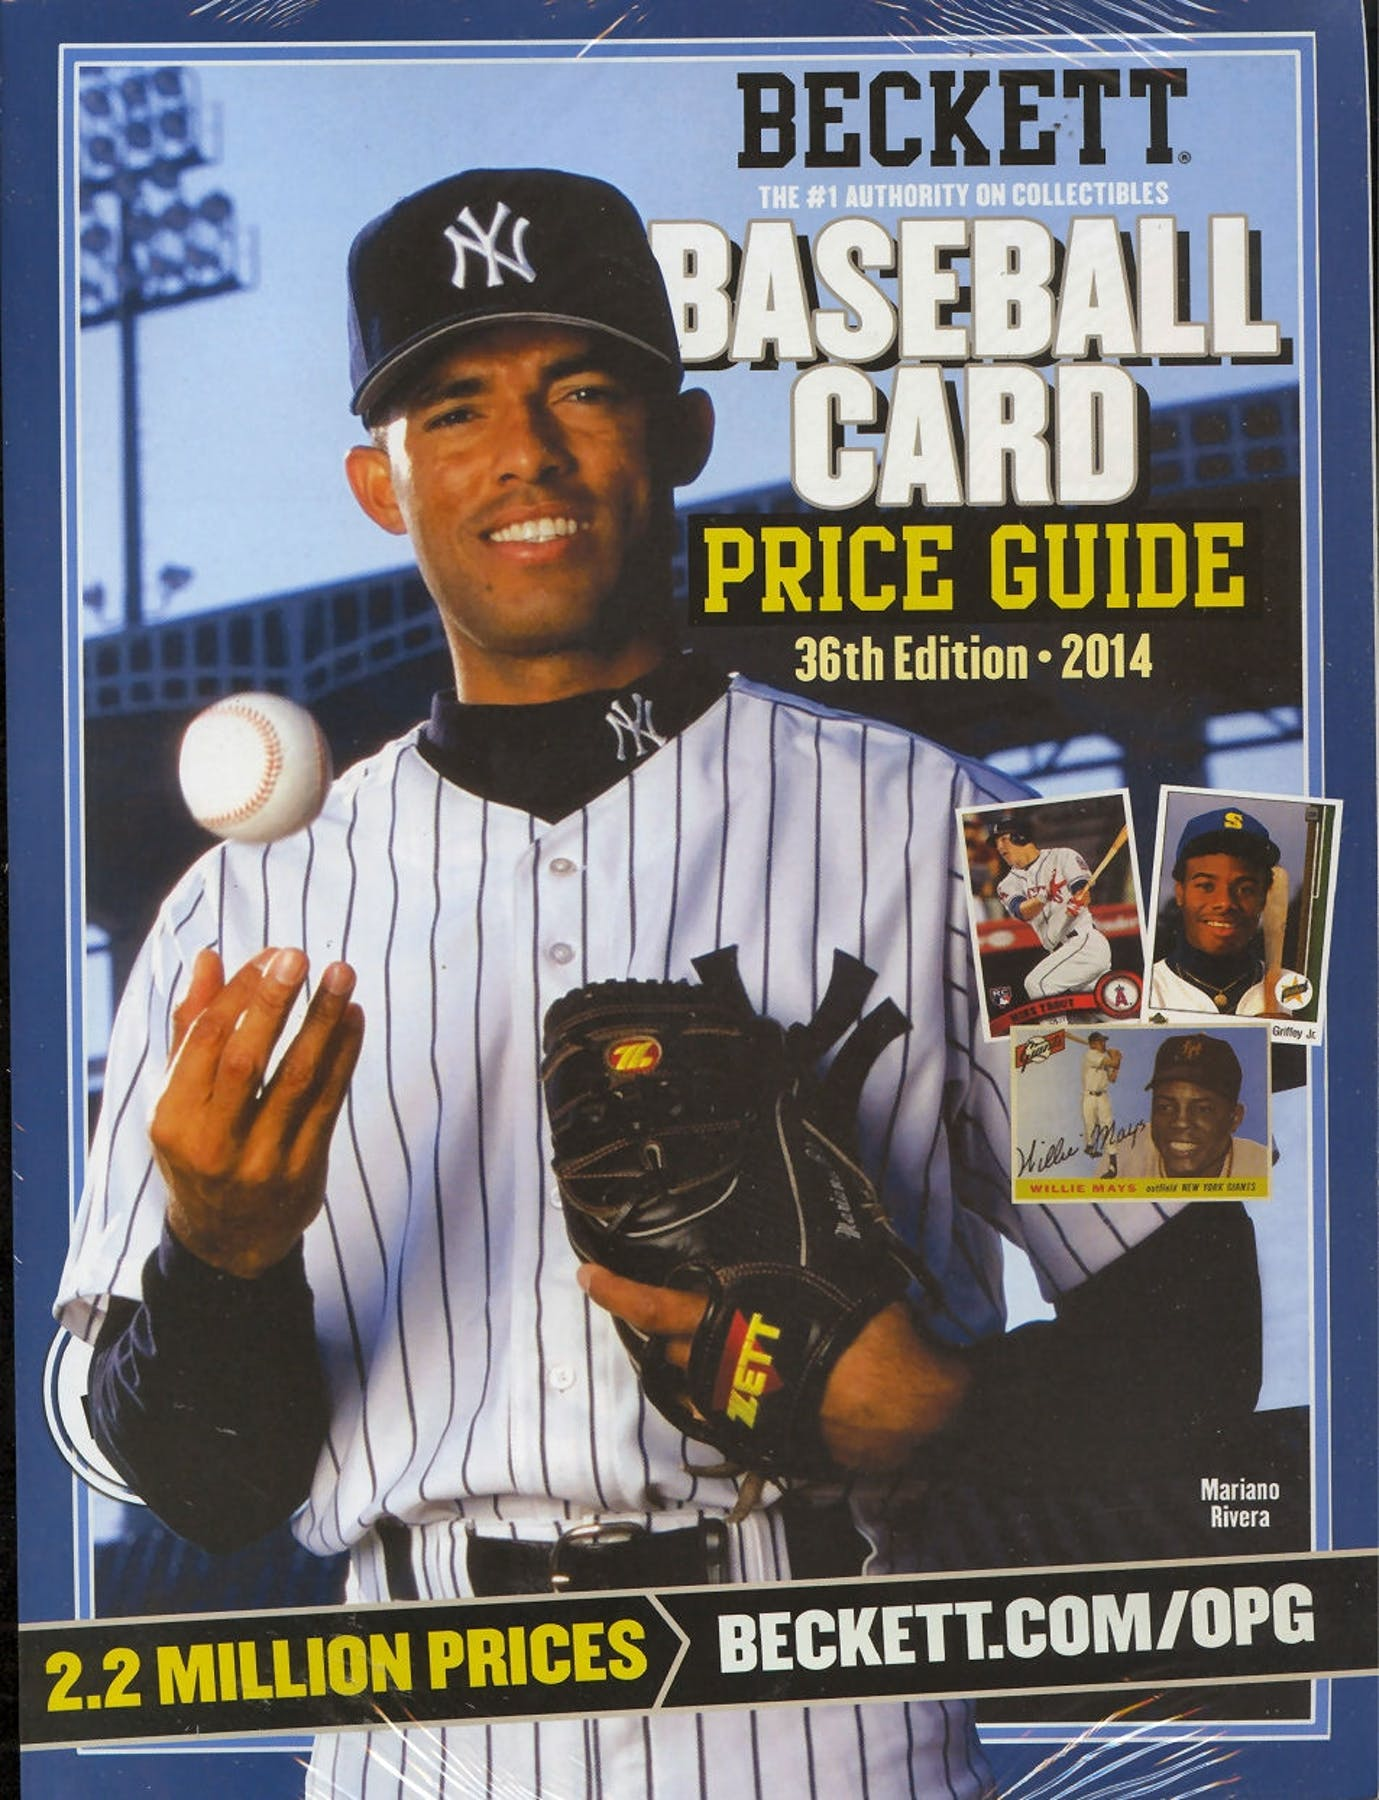 Beckett baseball card guide 36th edition 2014 ex-library | ebay.